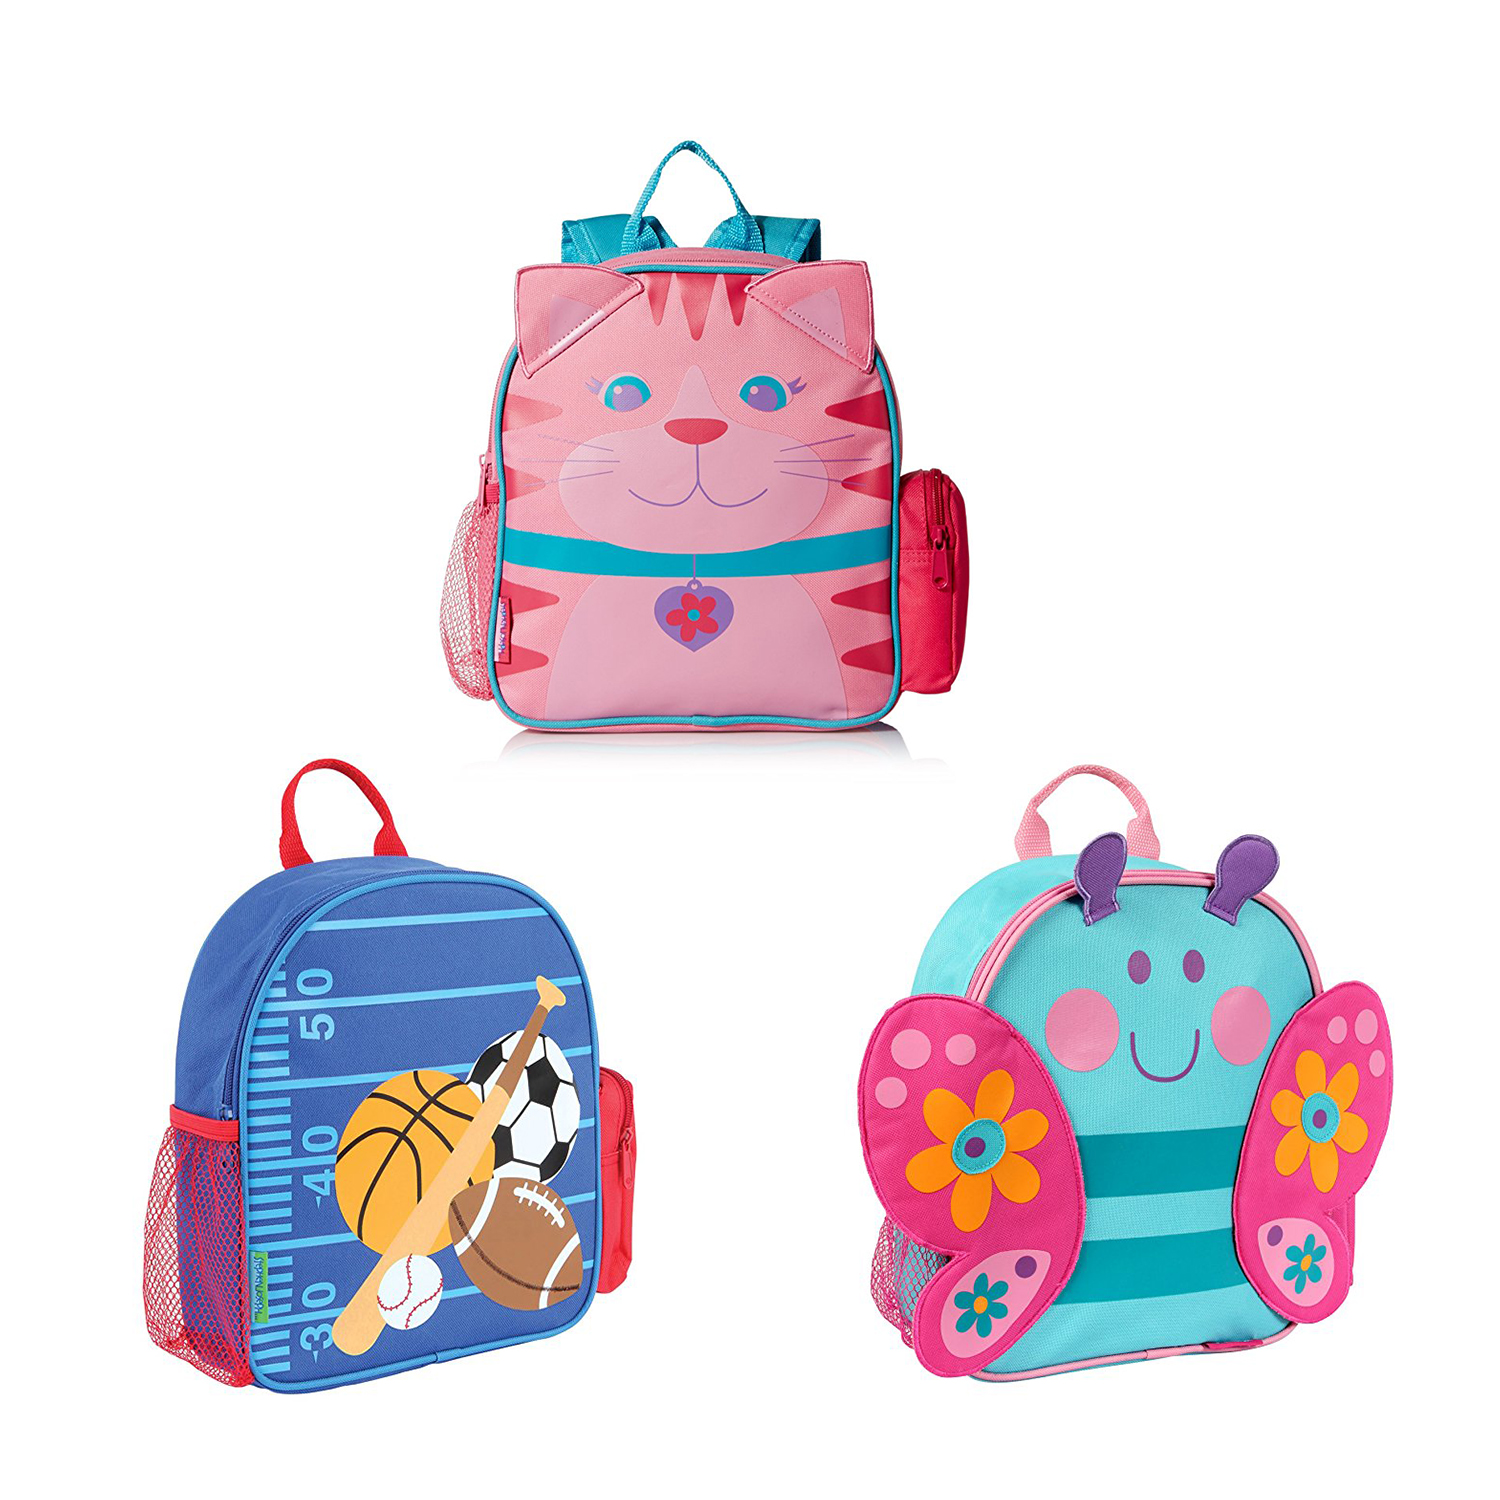 NEW Stephen Joseph Mini Sidekicks Backpack